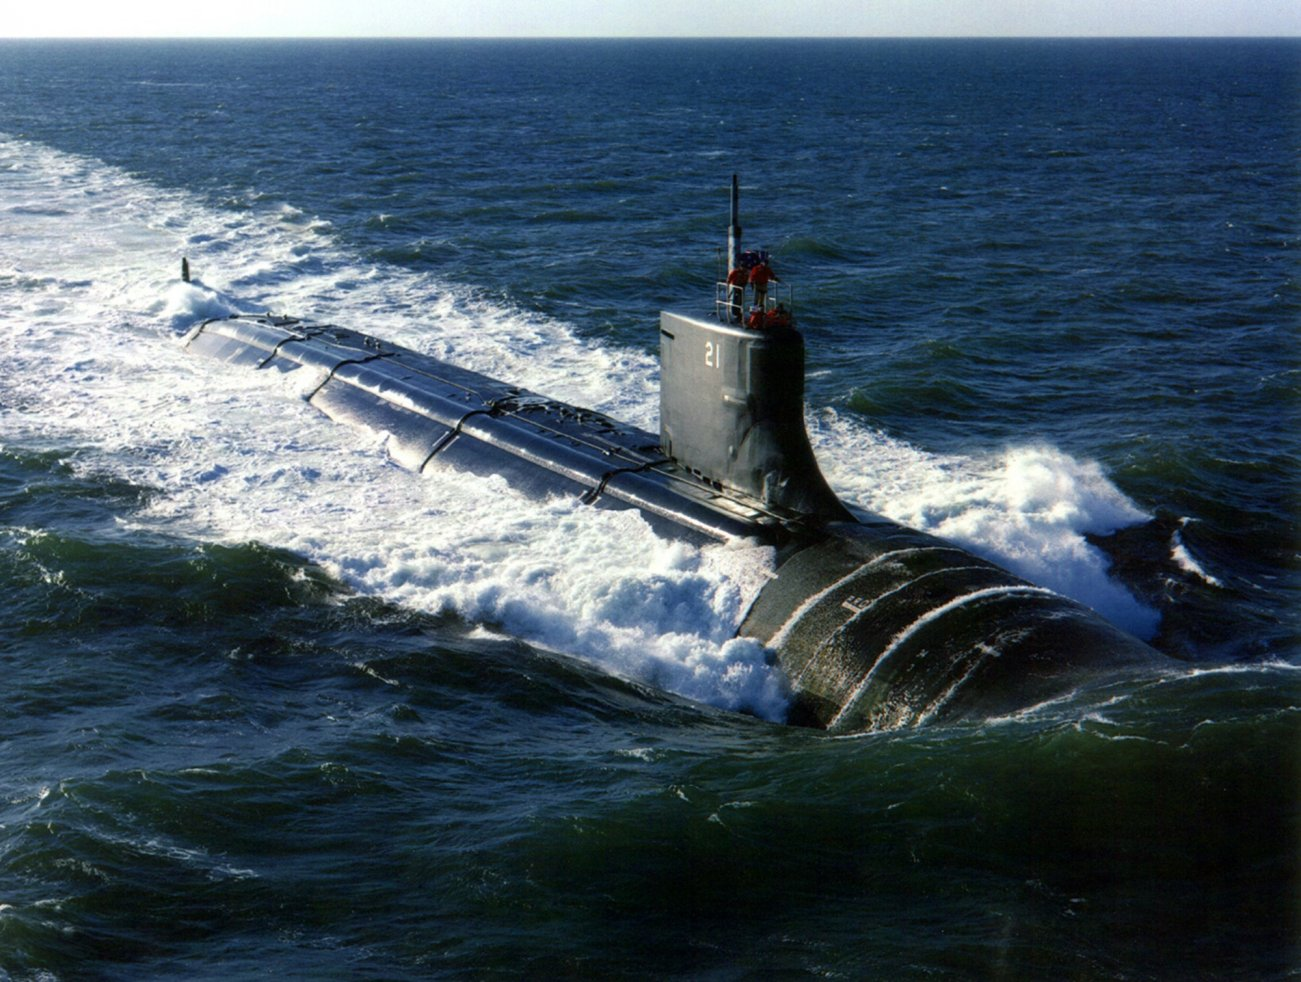 Silent And Deadly: The Navy's Seawolf Submarine Is A Naval Monster